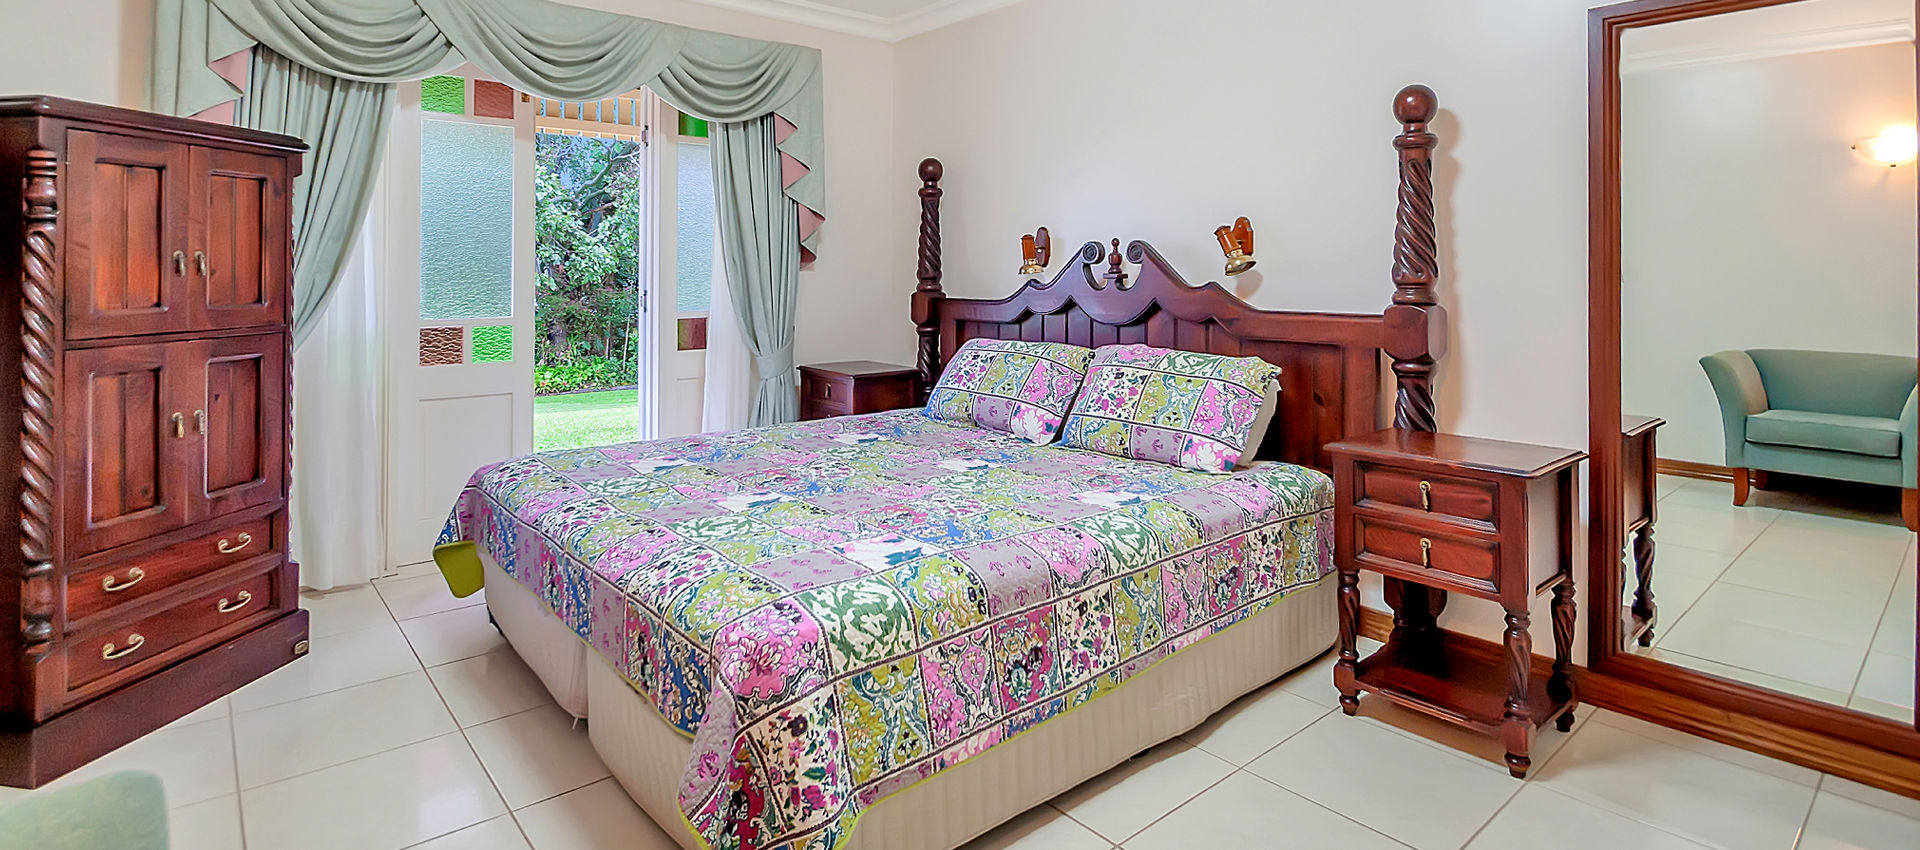 Bed and Breakfast accommodation Williams Lodge BnB Yungaburra